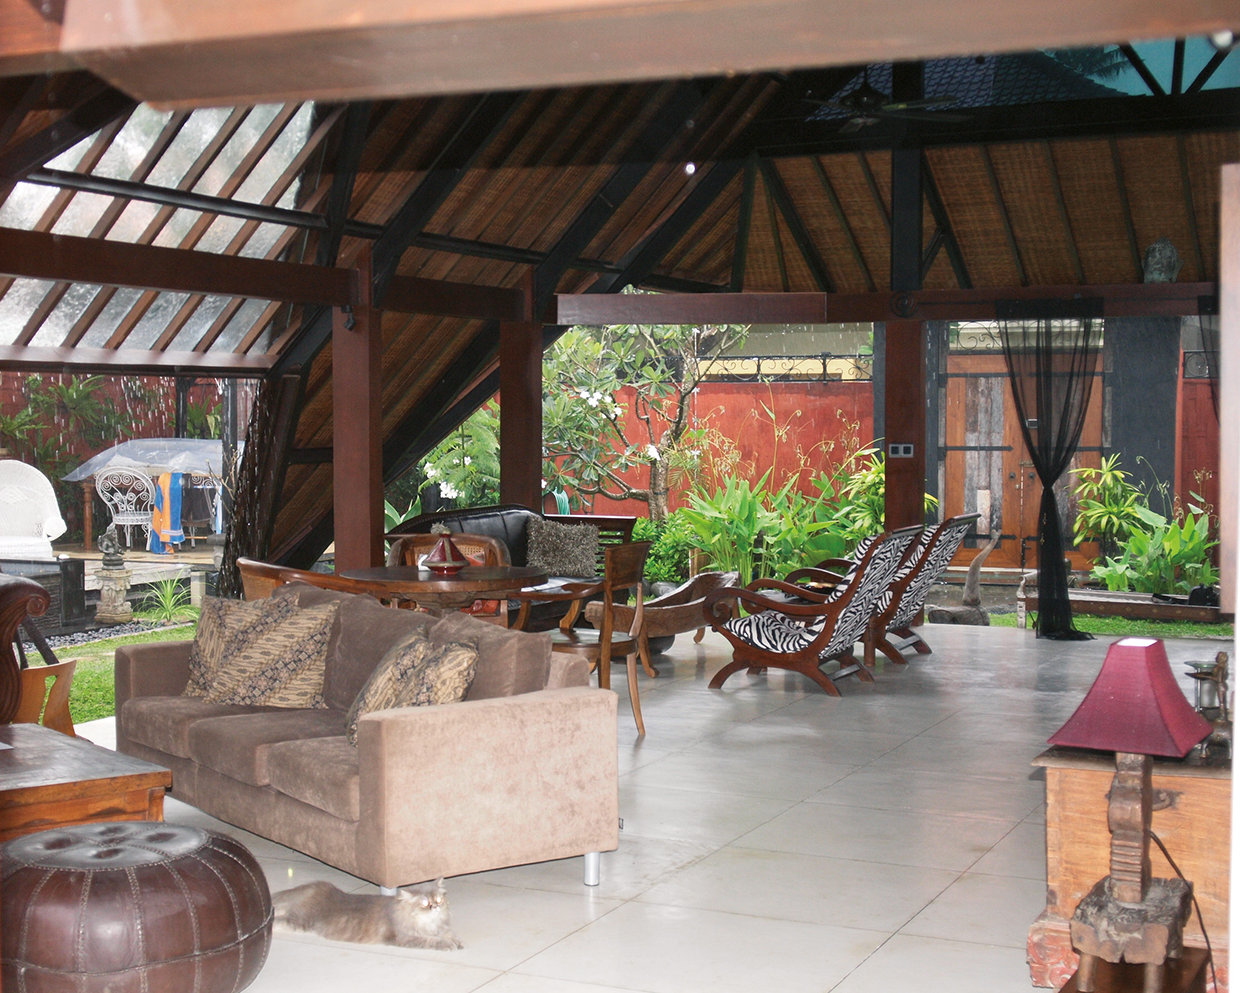 Beamed ceilings lined with rattan create the ultimate insulation. The height and wide open spaces allow for air flow and eliminate the need for conventional air conditioning. The house was designed and furnished to be environmentally friendly and has a mixture of Balinese and Japanese furniture in keeping with ecological and Feng Shui principles. © Nikita Arnett